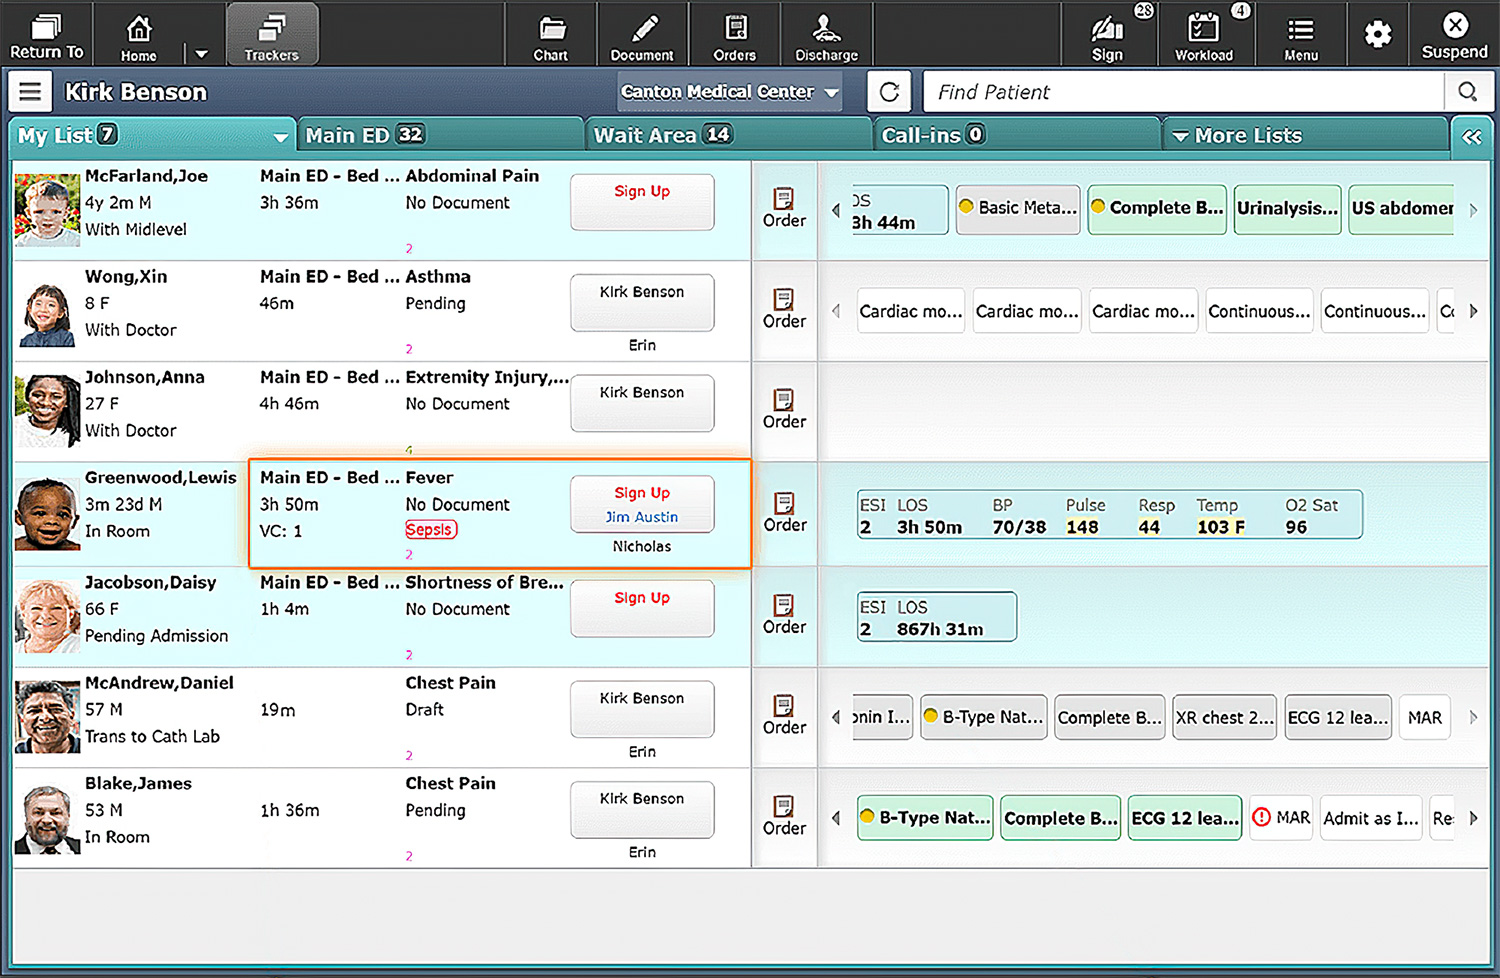 MEDITECH ED patient tracker screen shot